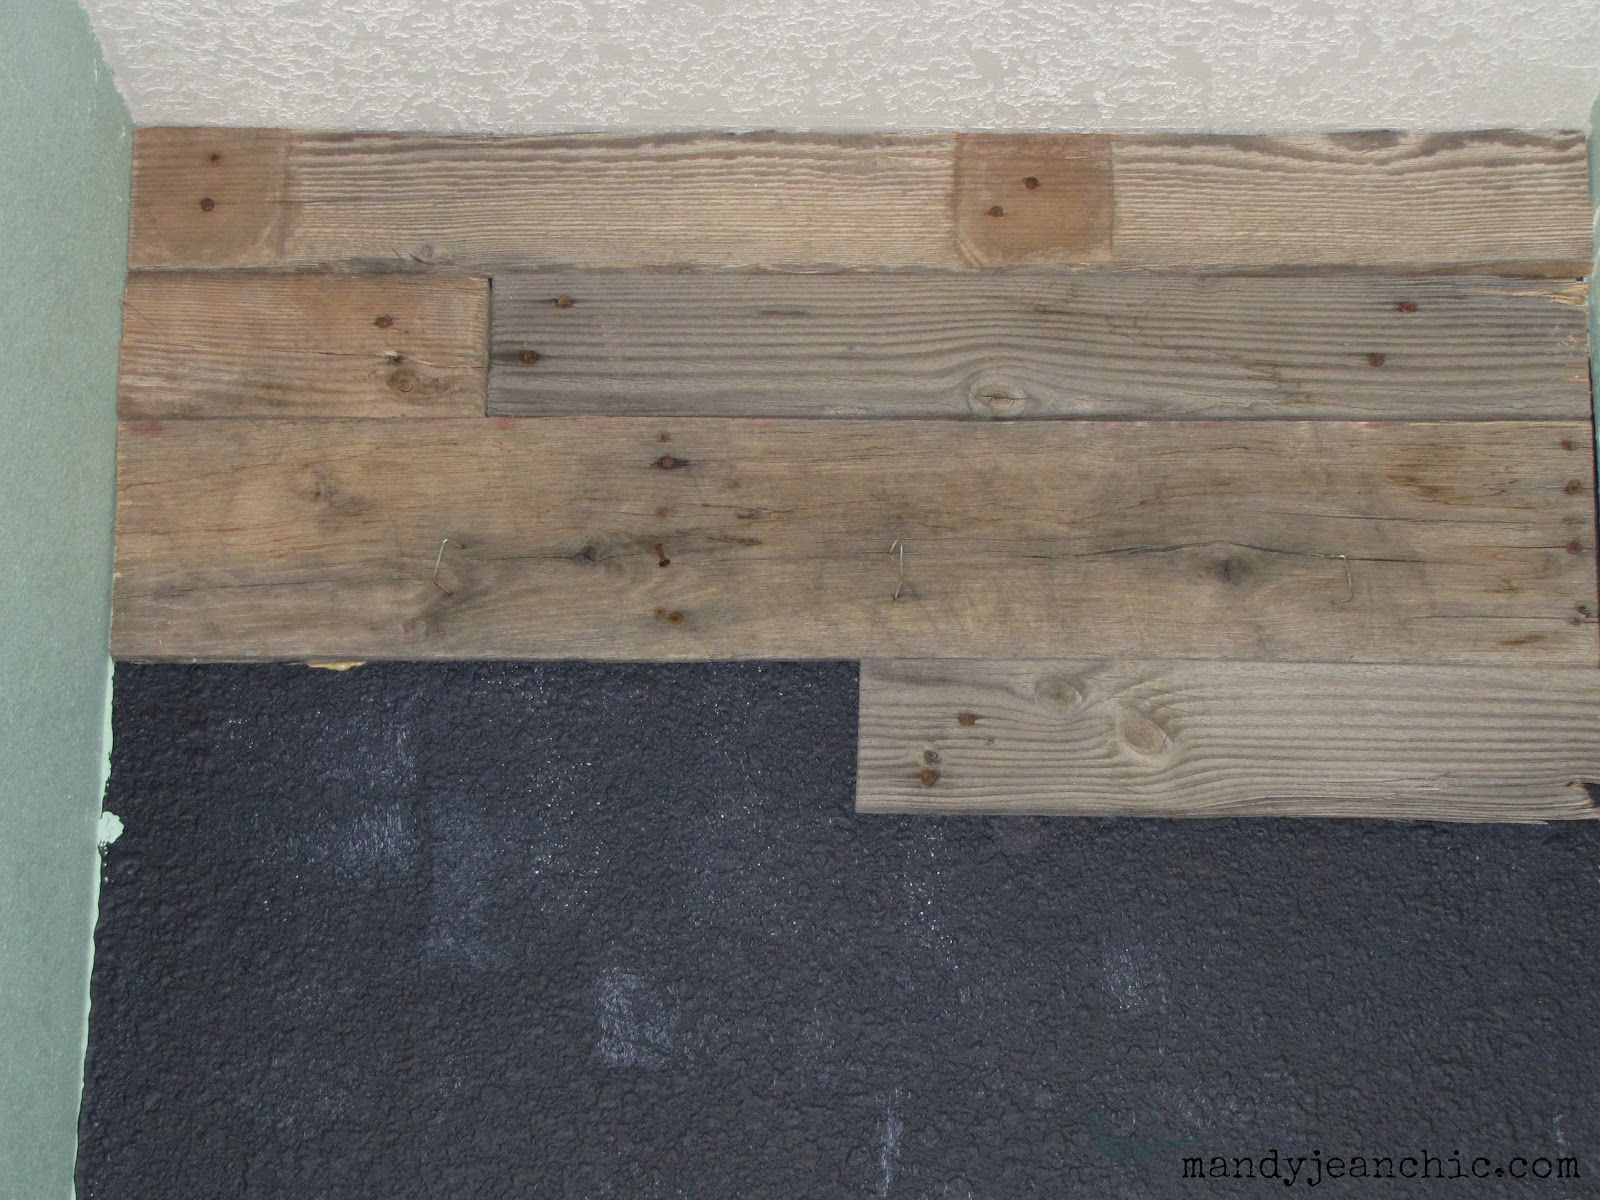 Pallet Wall Bathroom Mandy Jean Chic Diy Pallet Wall For The Free Toilet Room Makeover